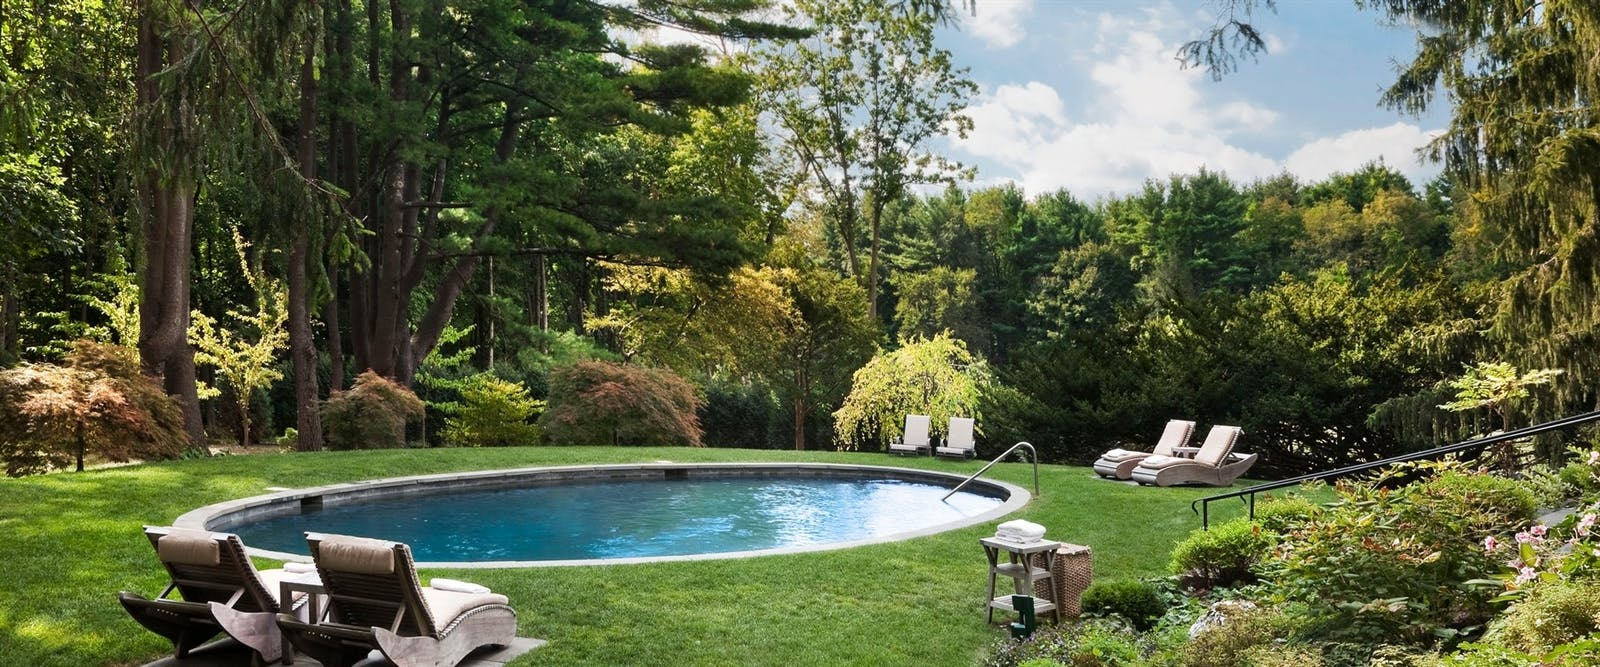 Pool at Wheatleigh, New England